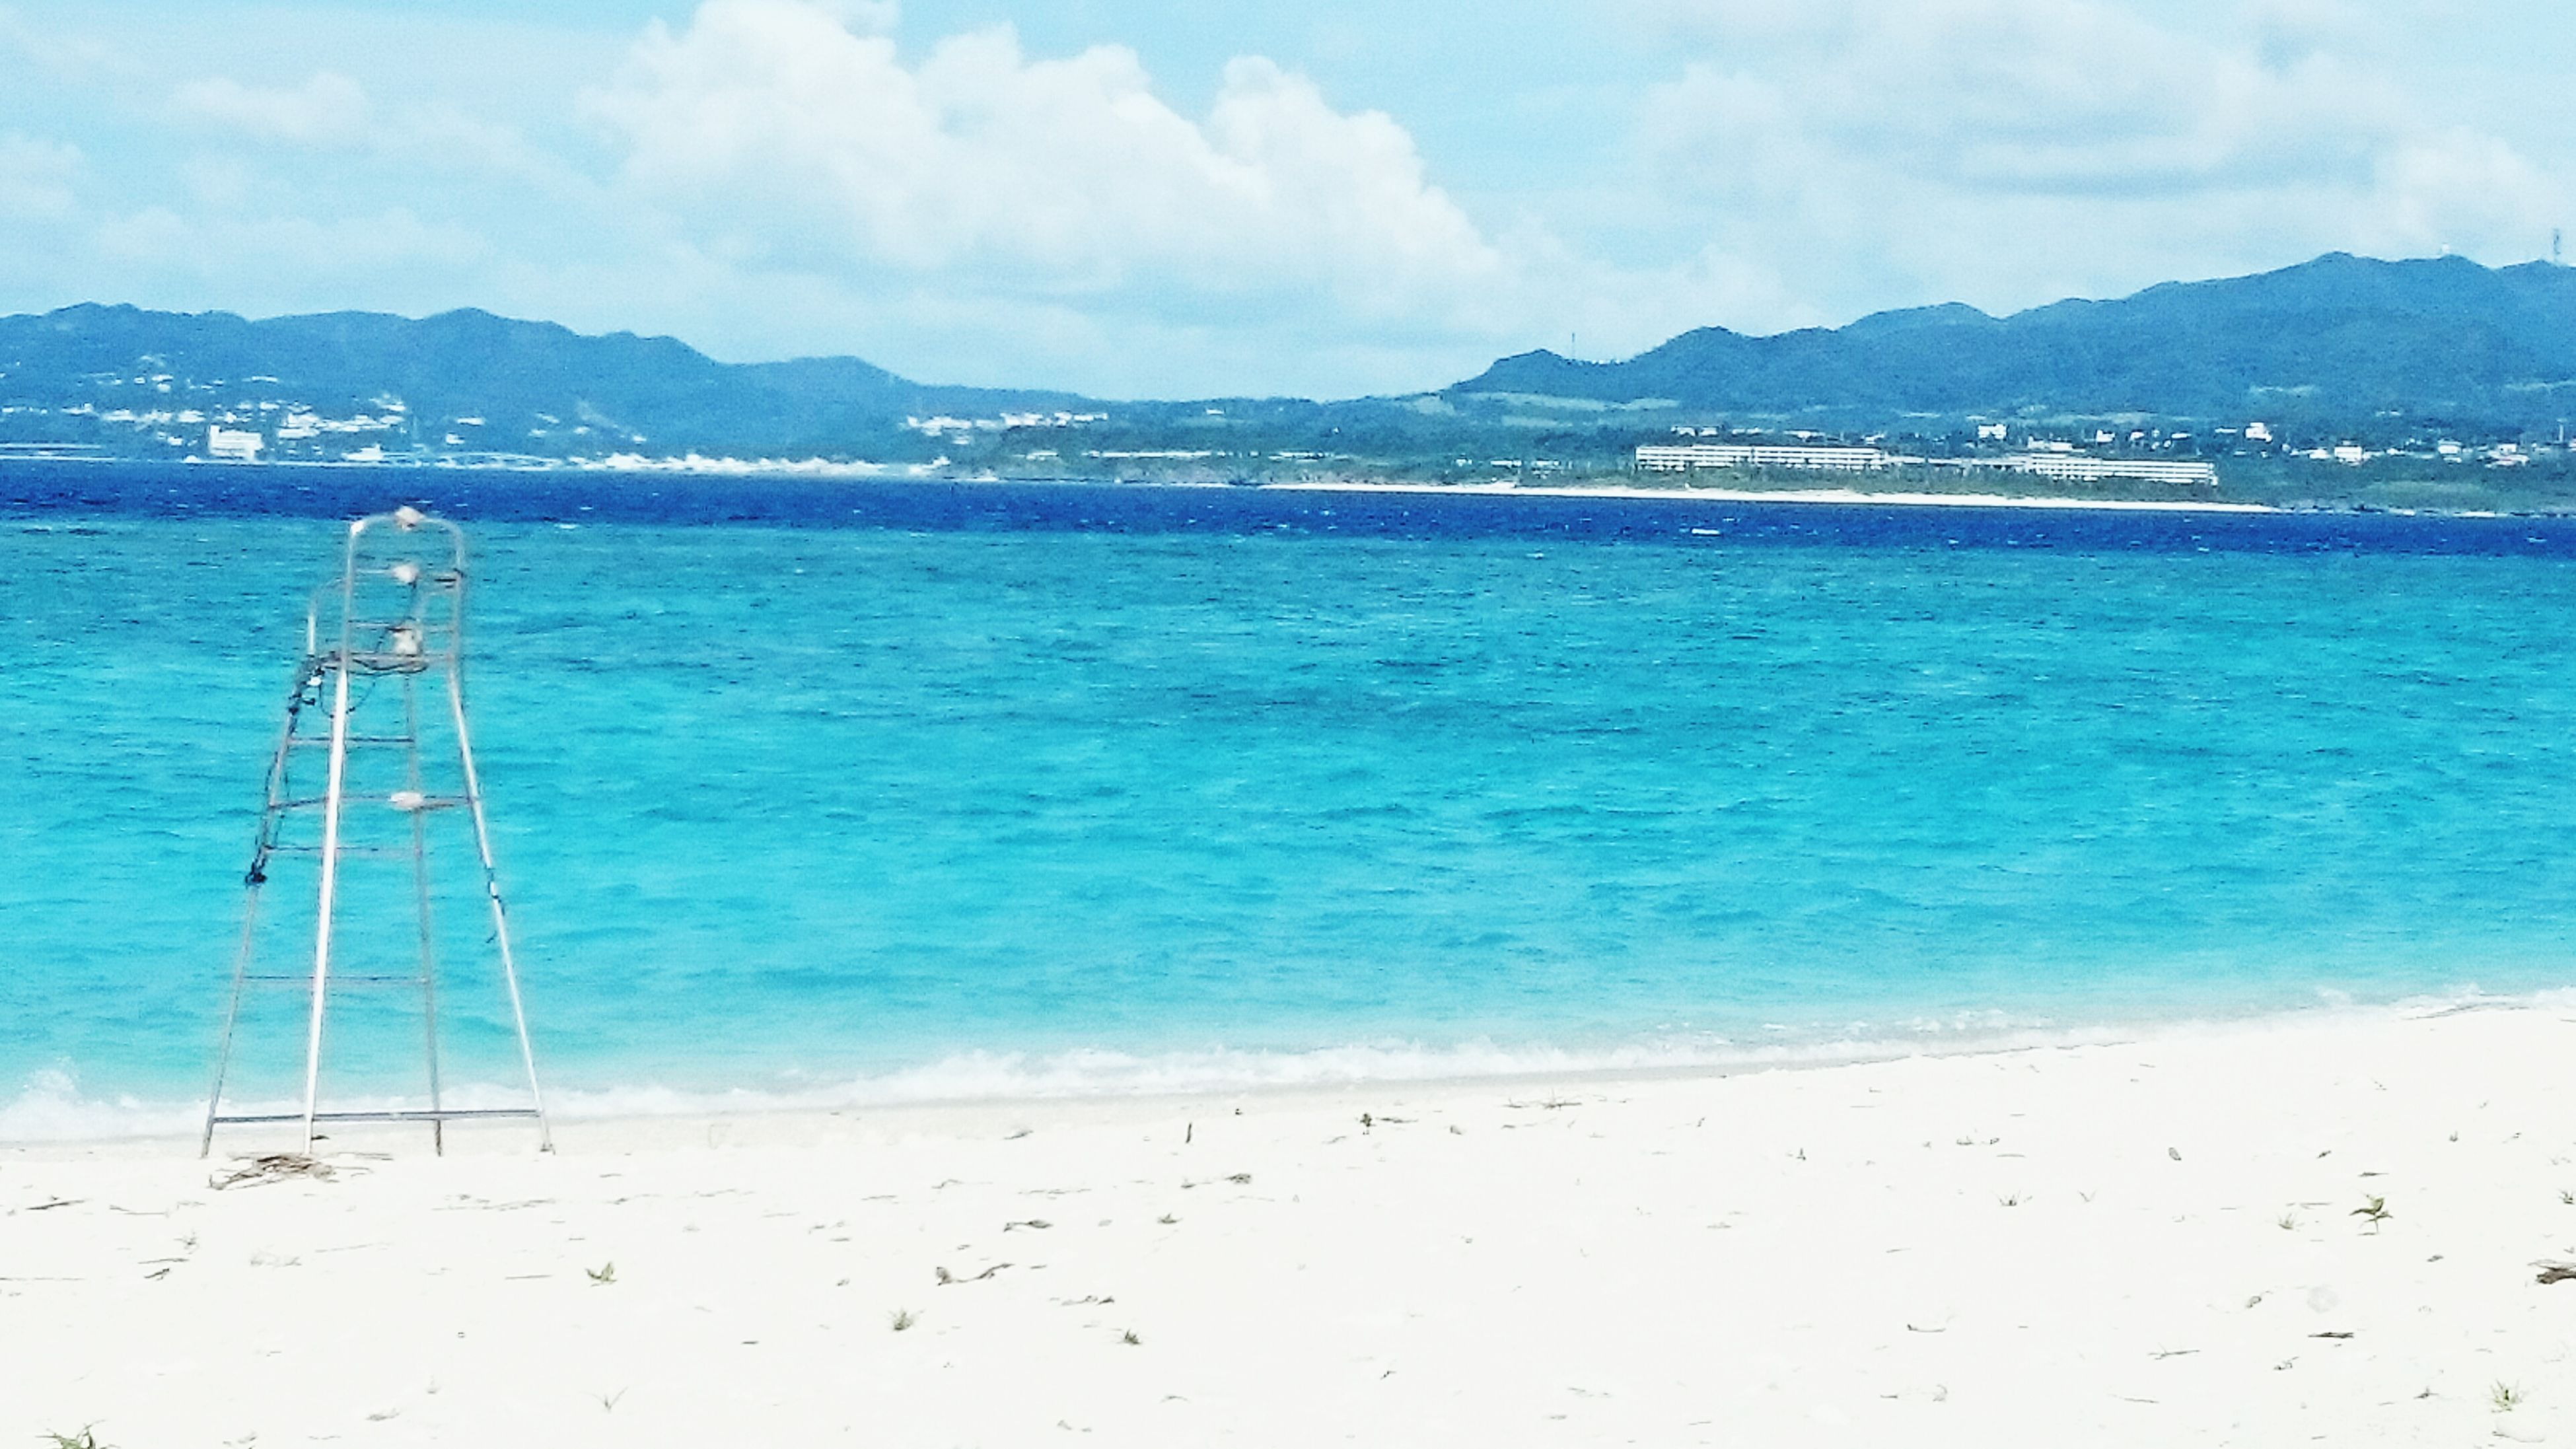 water, beach, blue, sea, mountain, scenics, tranquil scene, shore, sand, sky, tranquility, cloud - sky, mountain range, nature, beauty in nature, calm, day, outdoors, non-urban scene, no people, remote, seascape, tourism, coastline, ocean, vacations, solitude